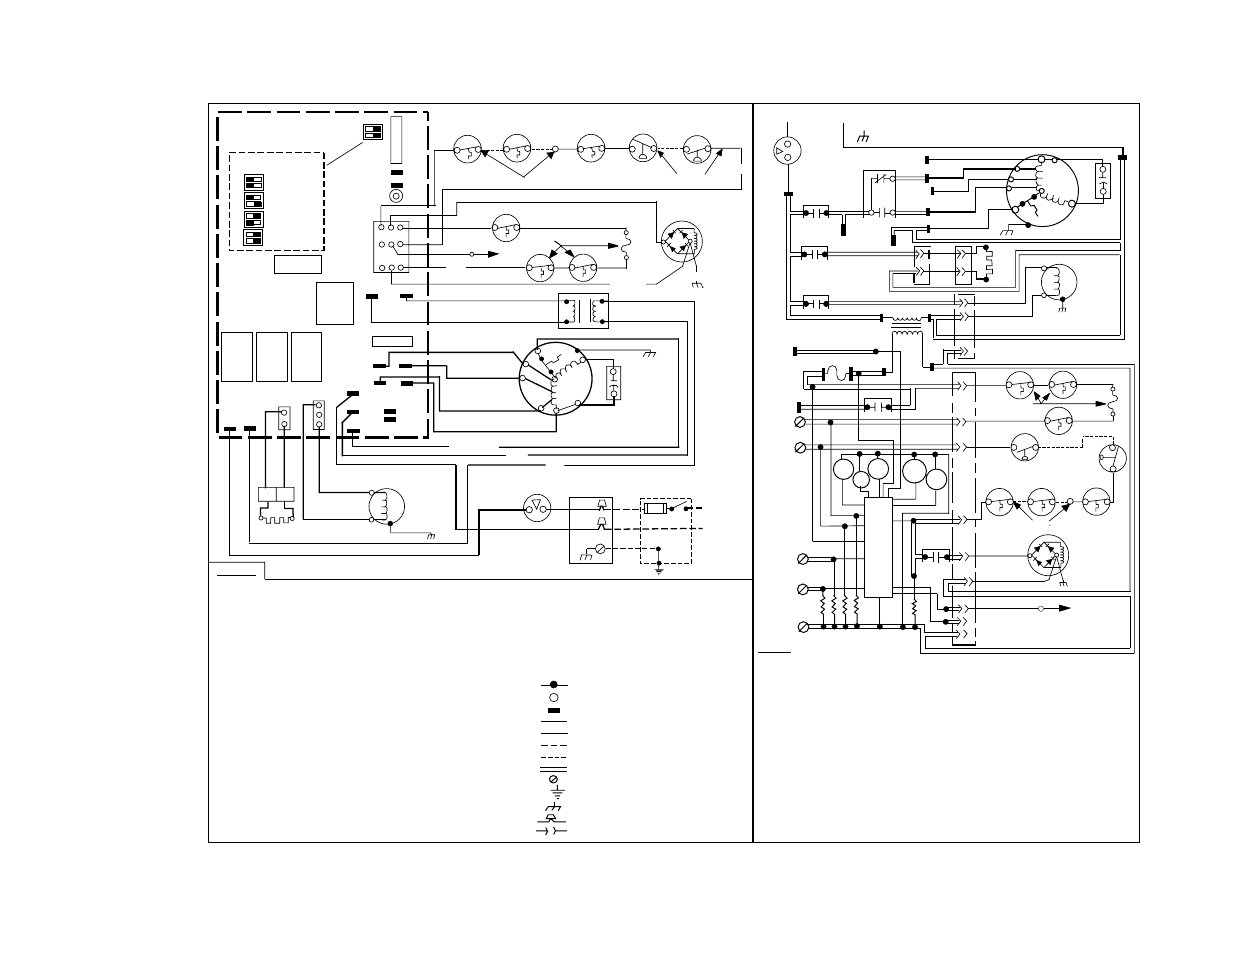 hight resolution of fig 11 wiring diagram bryant 395cav user manual page bryant wiring diagram for air handler bryant